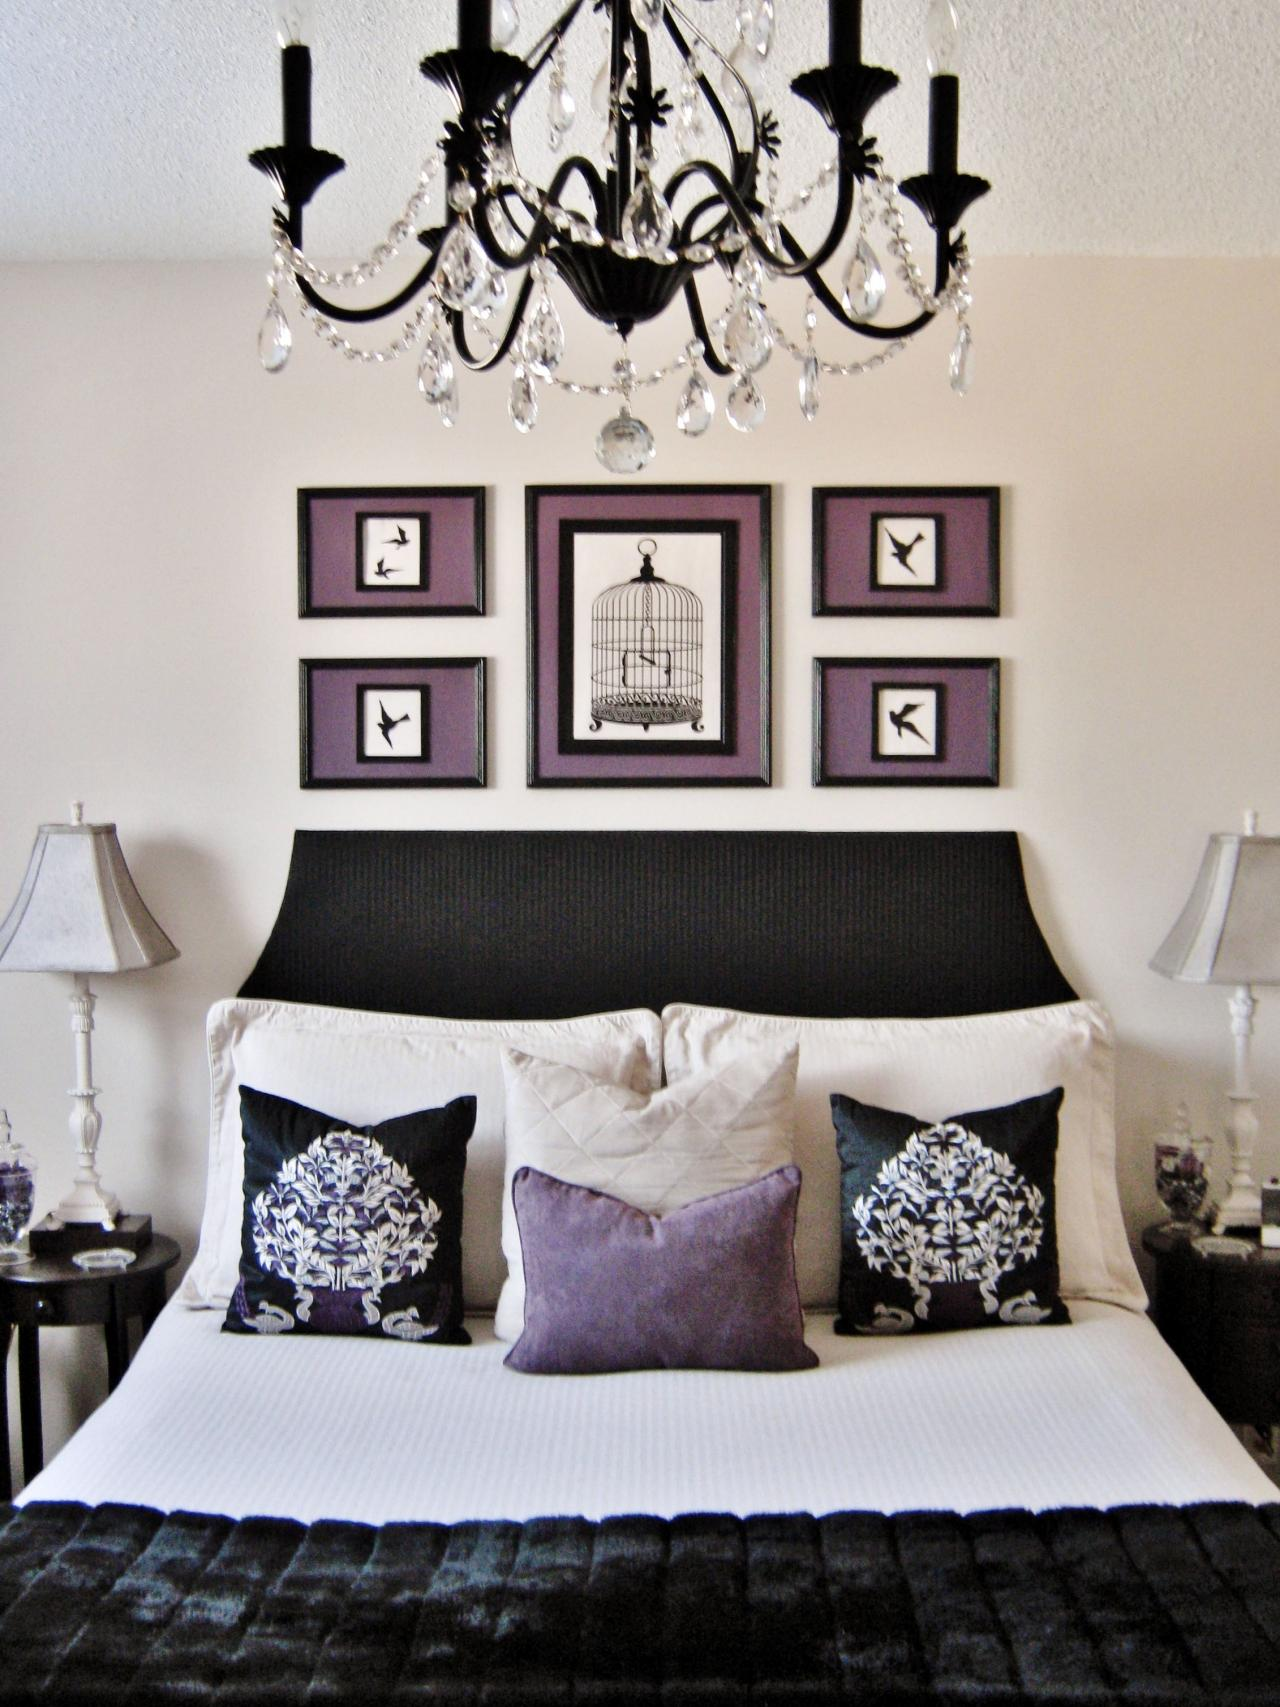 Black White And Purple Living Room 45 Exemples De Tête De Lit Originale En Styles Différents